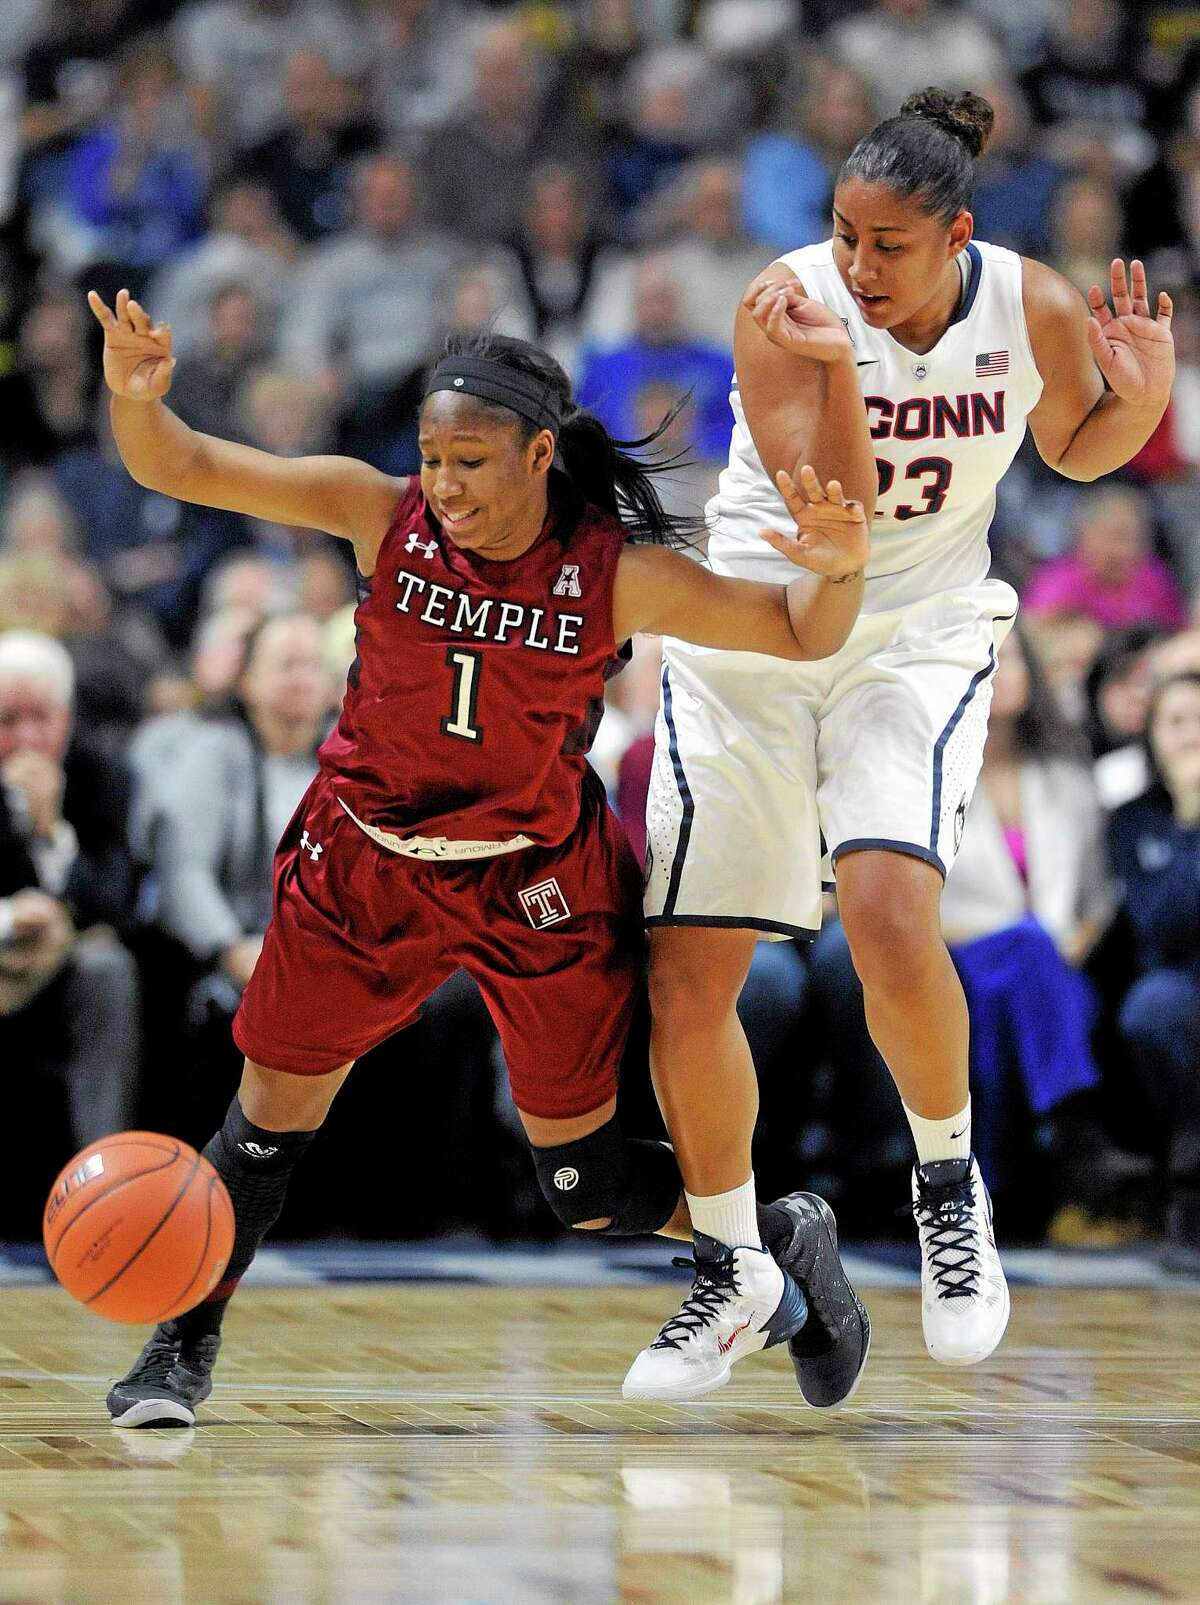 UConn junior Kaleena Mosqueda-Lewis is working her way back into shape for the Huskies after missing almost a month and a half.